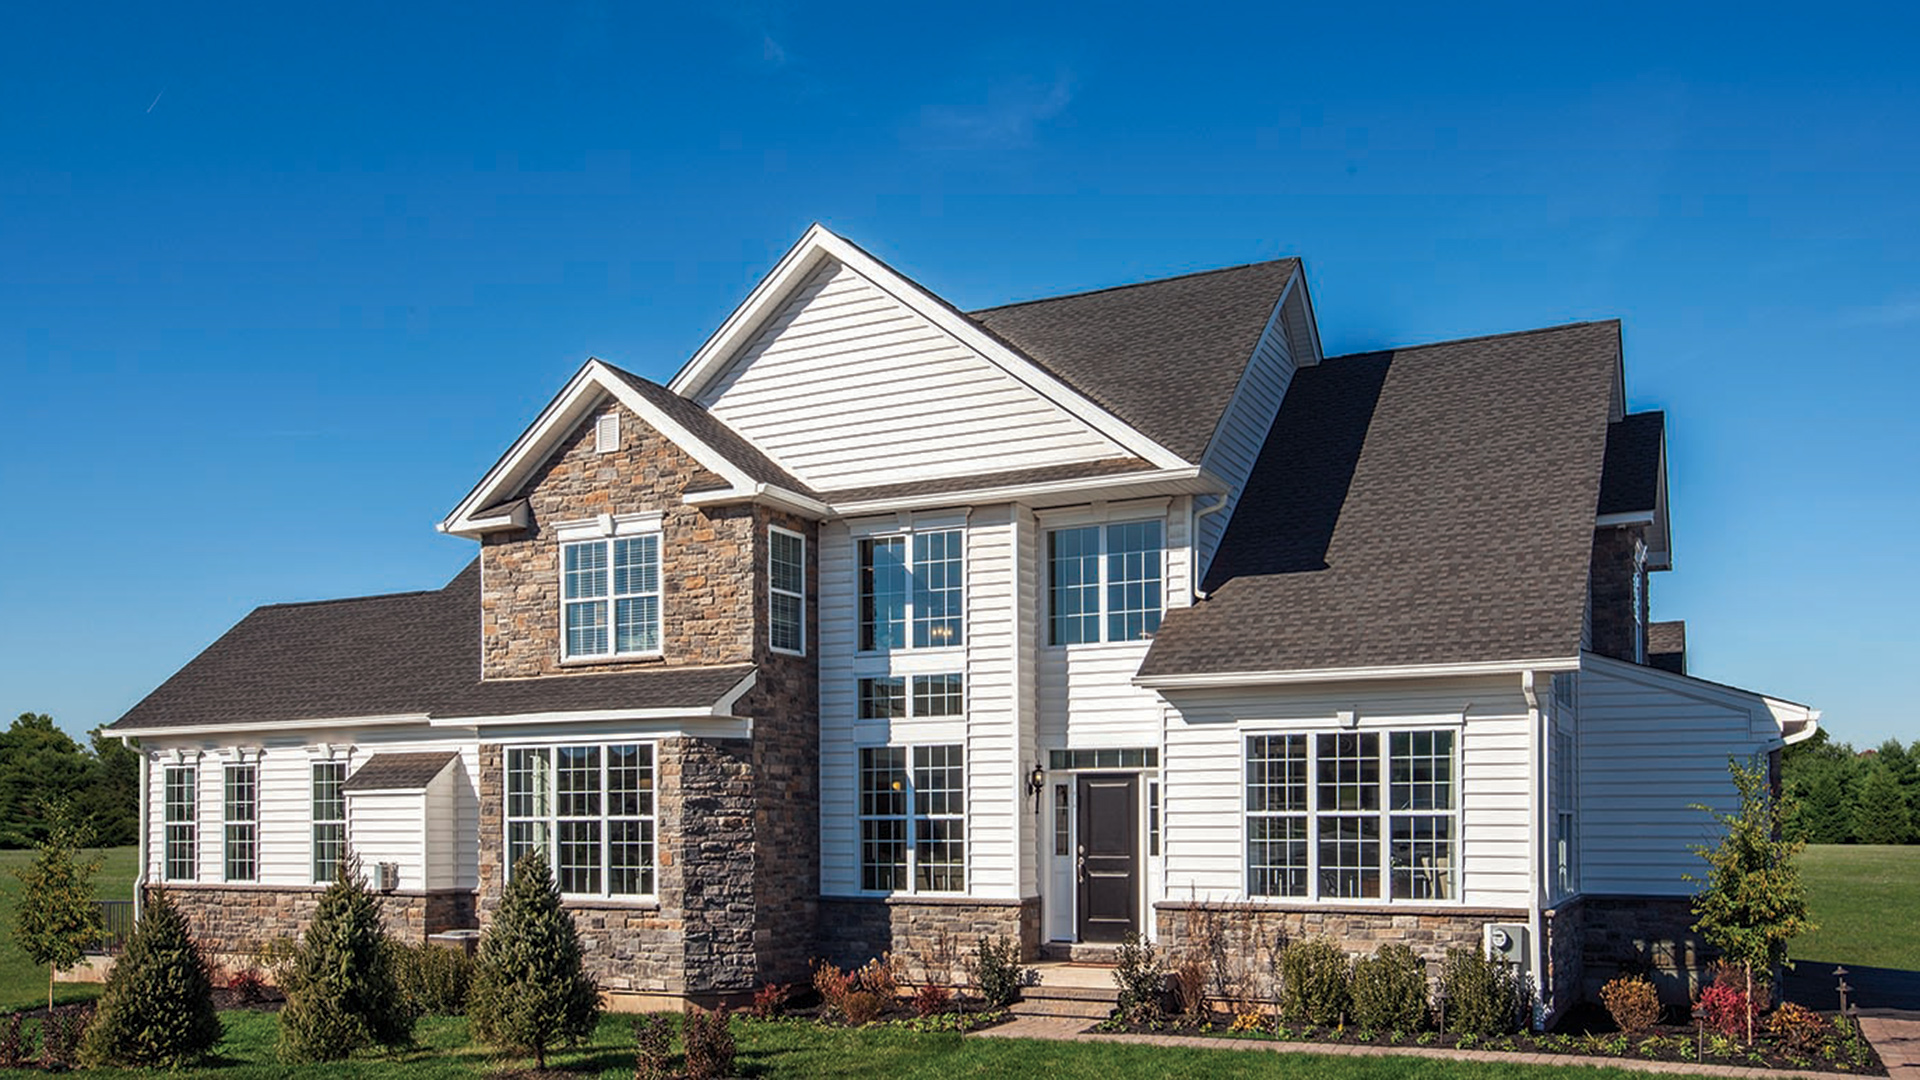 The Bryn Athyn Model Home